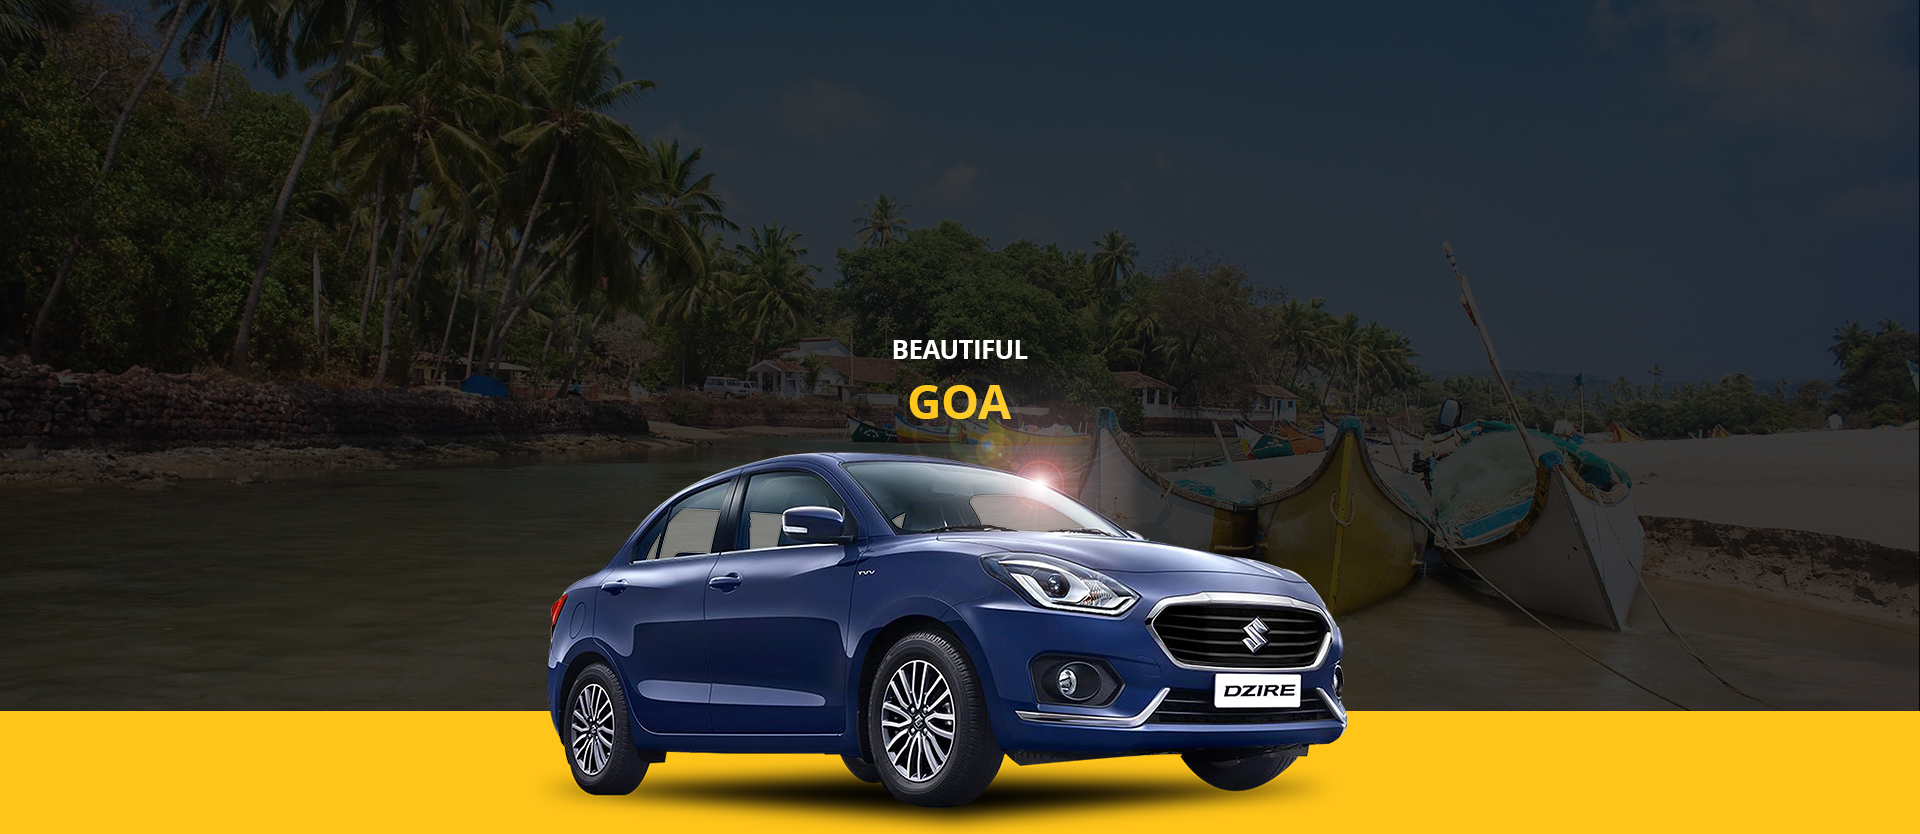 Rental Cars In Mumbai  Hire Cabs   Taxi Services  Book Now